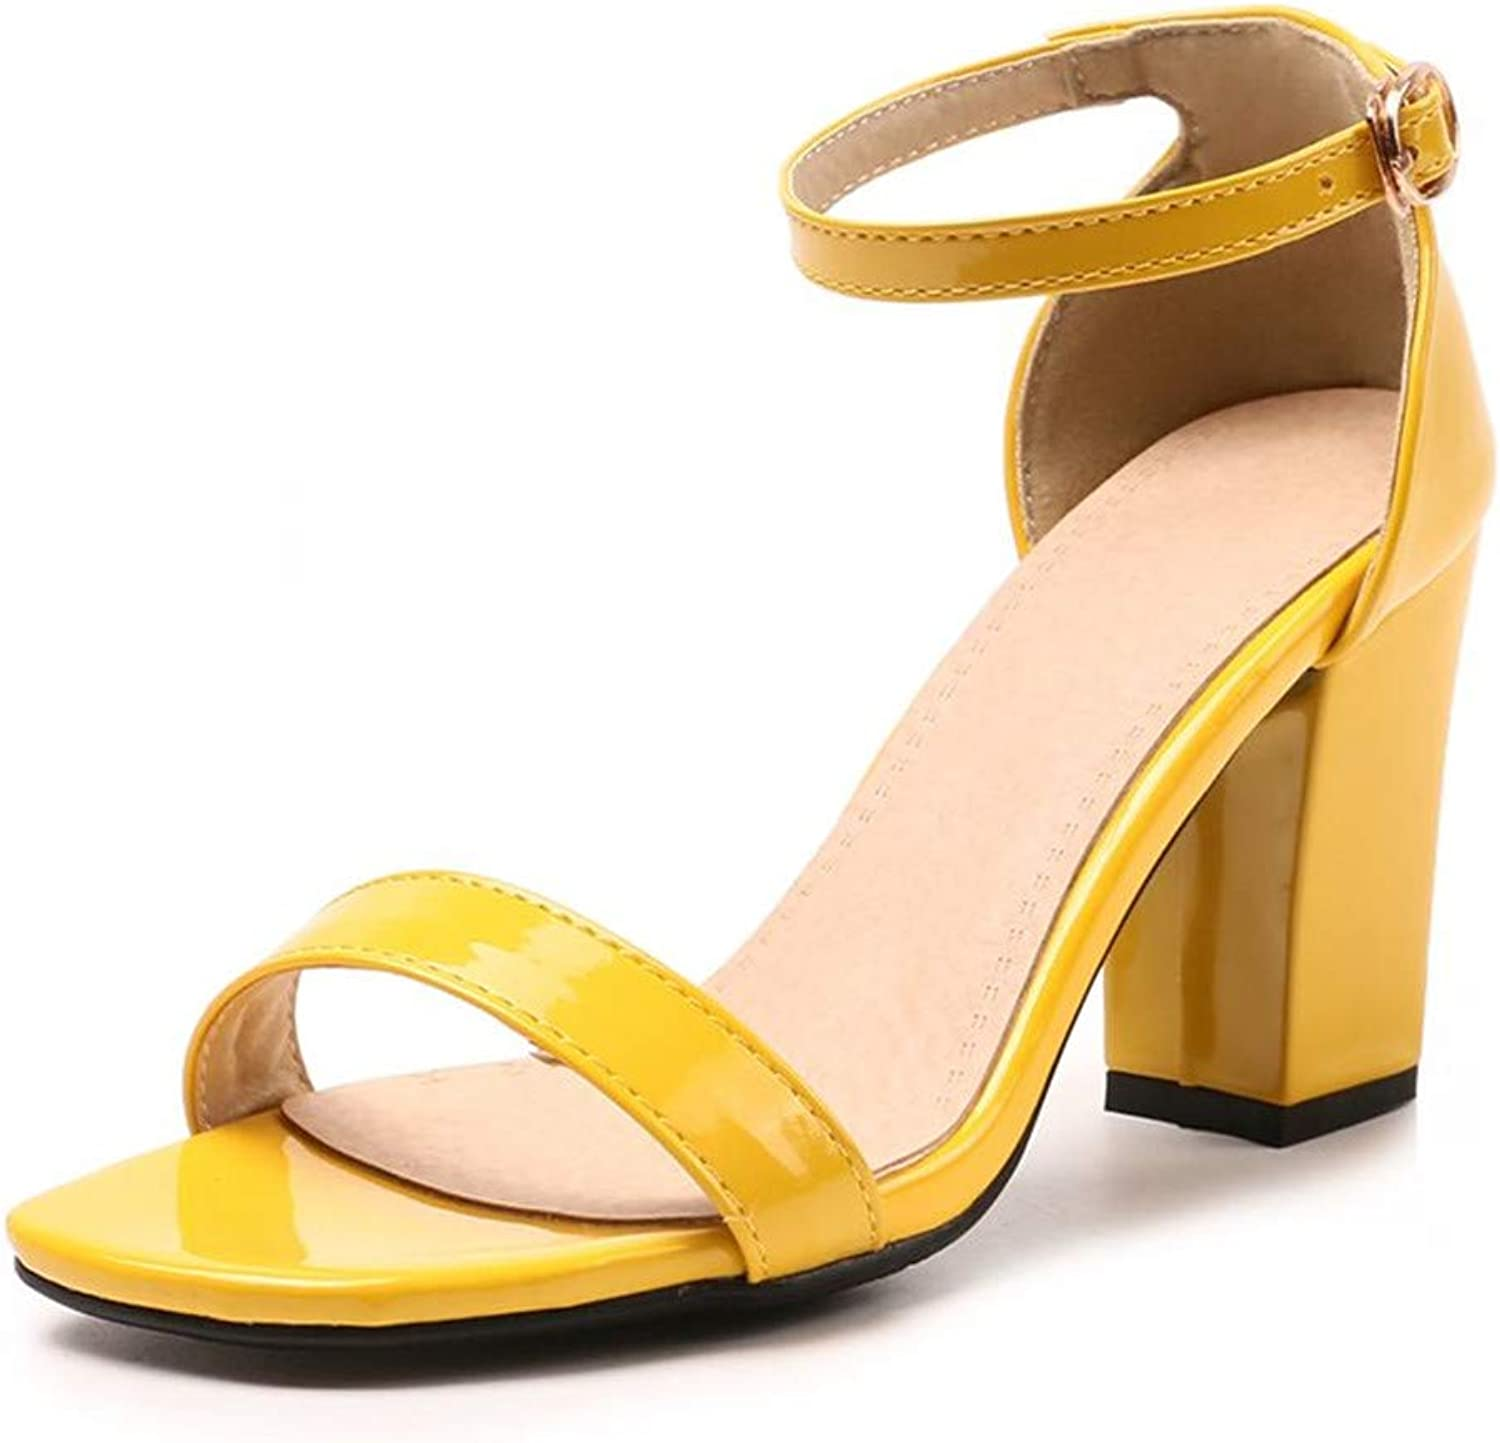 Women High Heels Sandals Square Heels Summer shoes Party Office Fashion Footwear